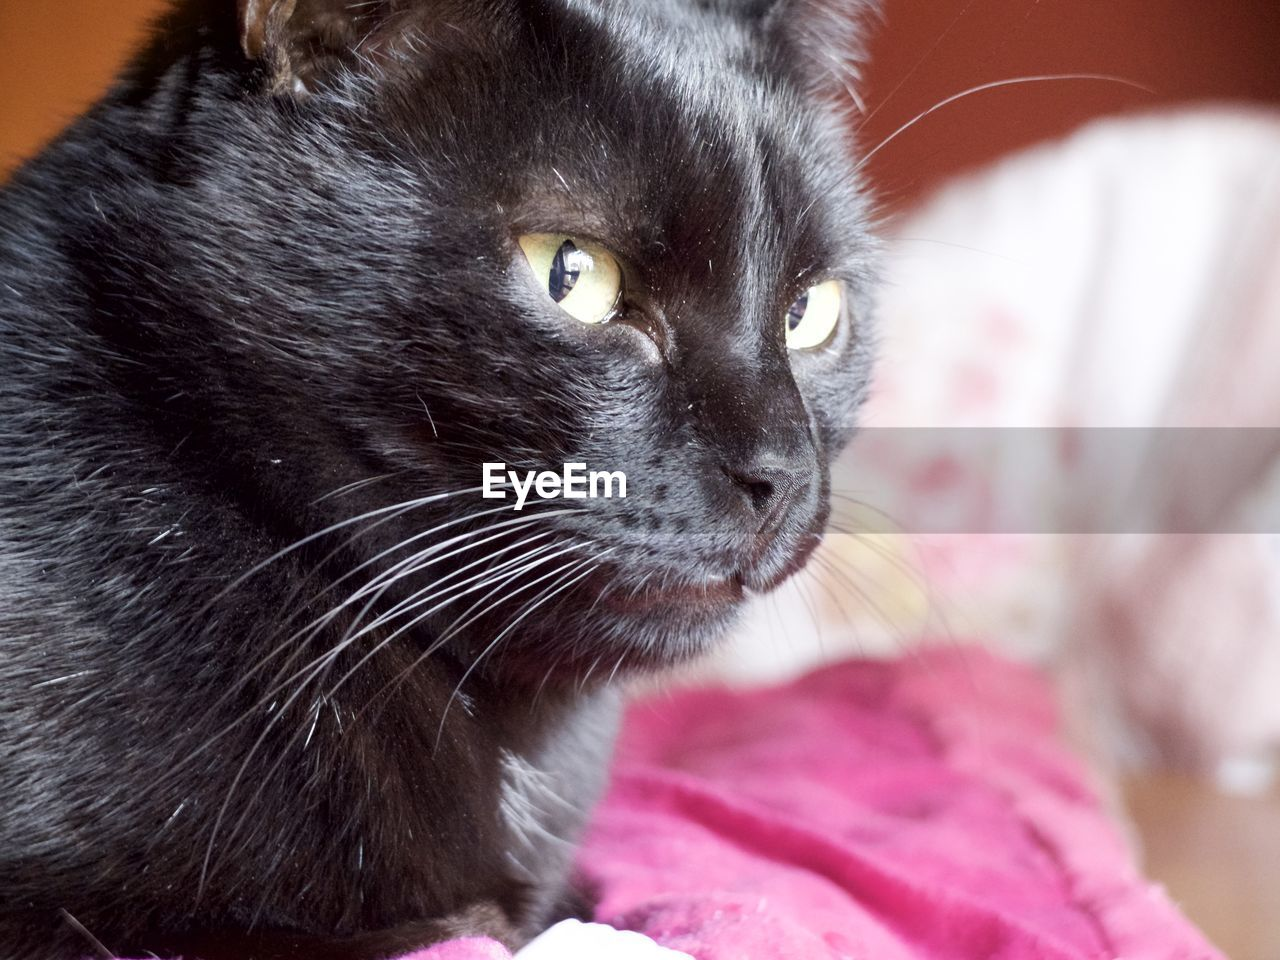 mammal, animal, one animal, animal themes, pets, domestic animals, domestic, cat, feline, domestic cat, vertebrate, close-up, looking away, whisker, looking, animal body part, focus on foreground, no people, indoors, relaxation, animal head, animal eye, yellow eyes, snout